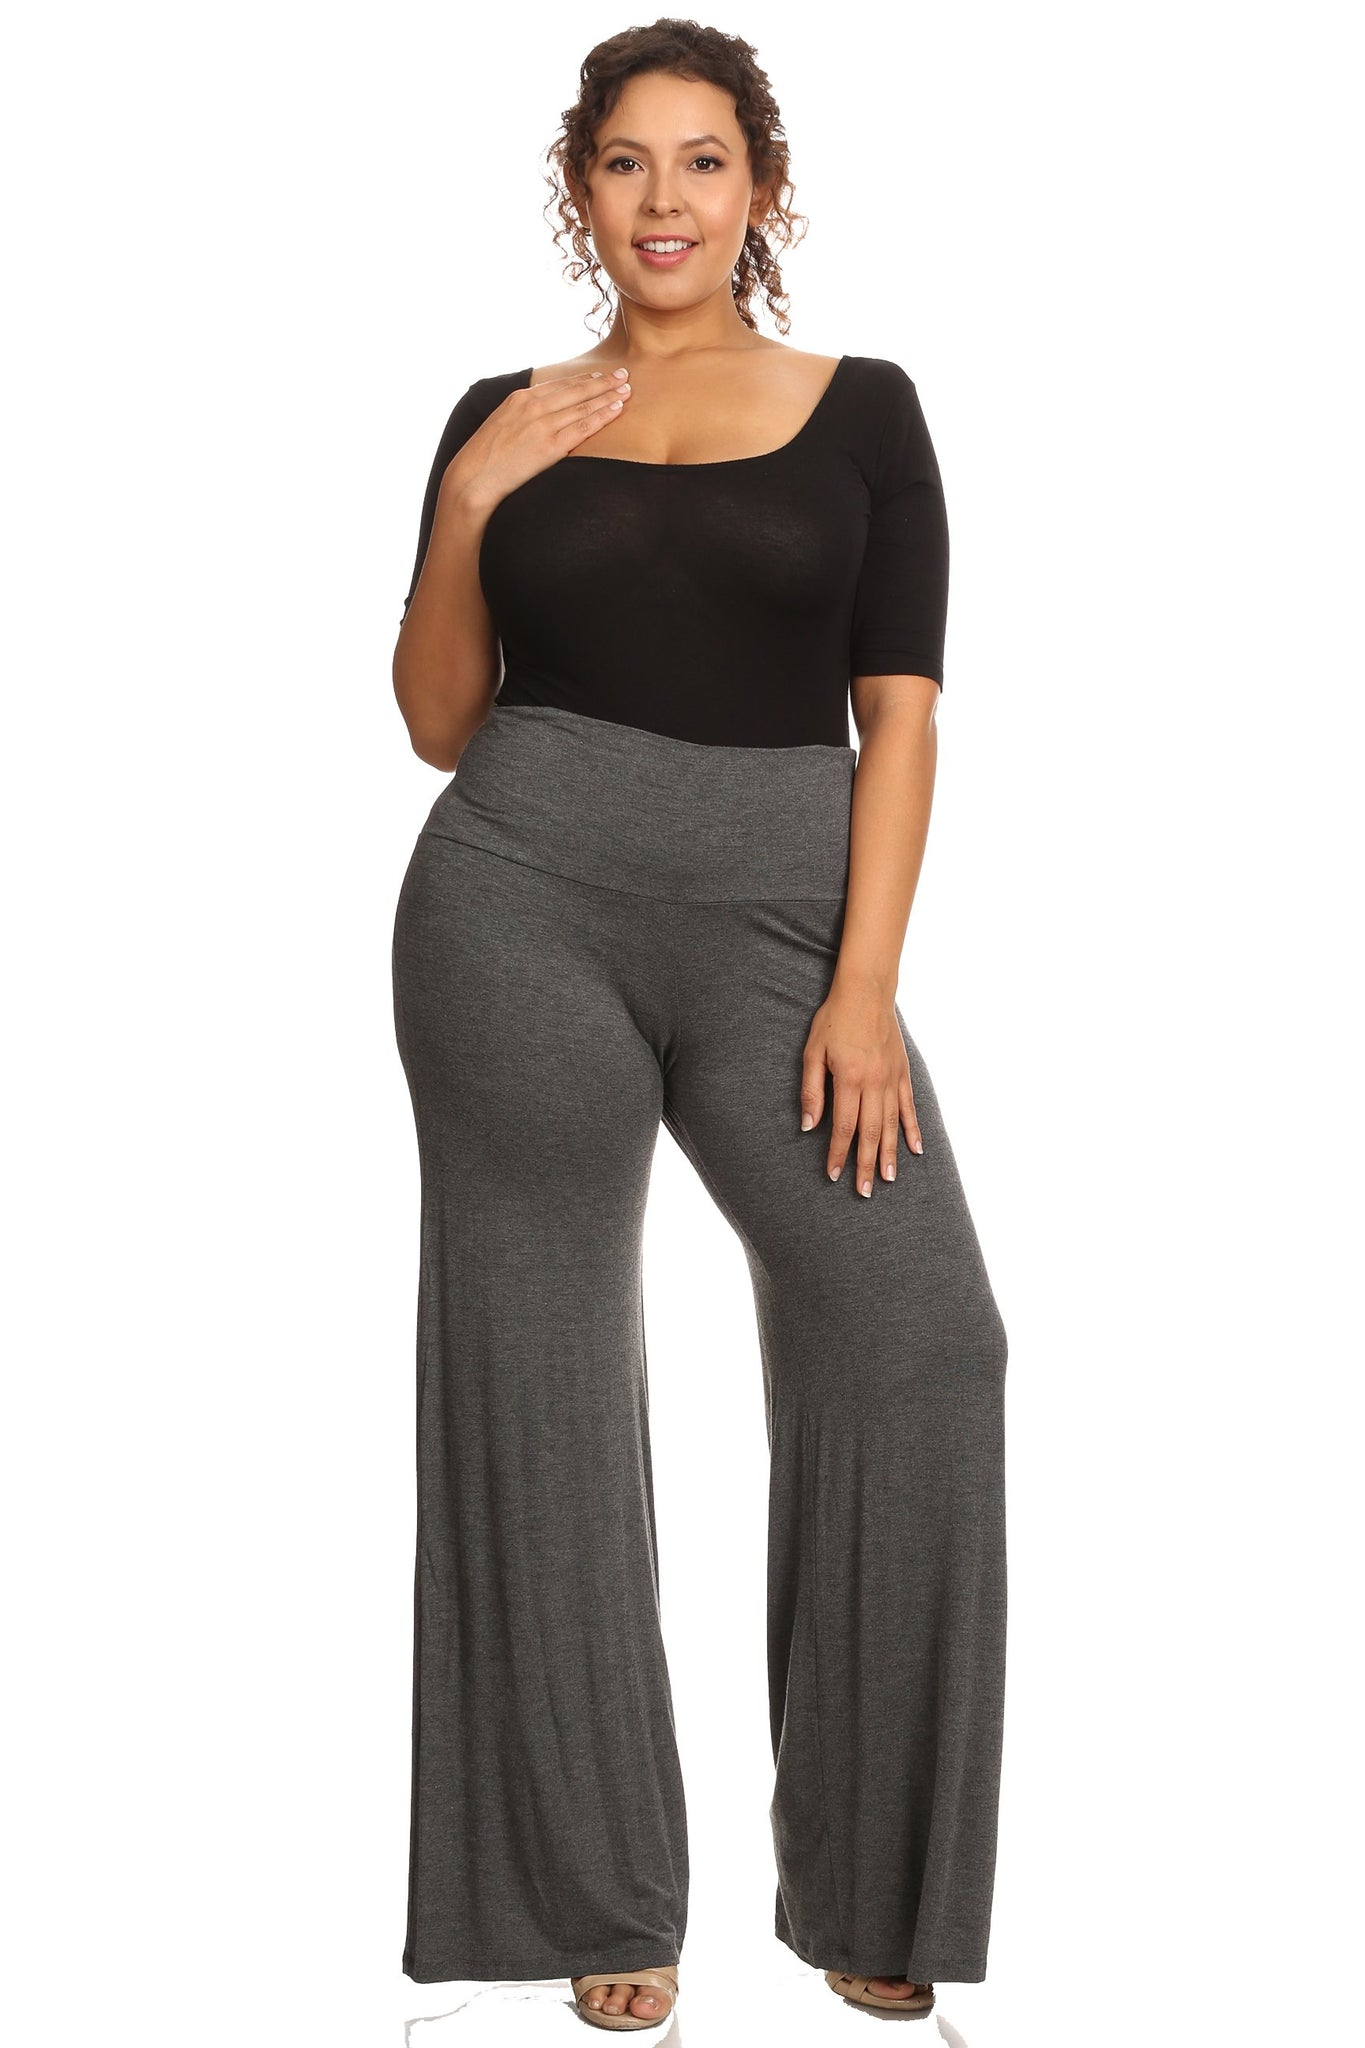 Women's Palazzo Pants - Made in the USA